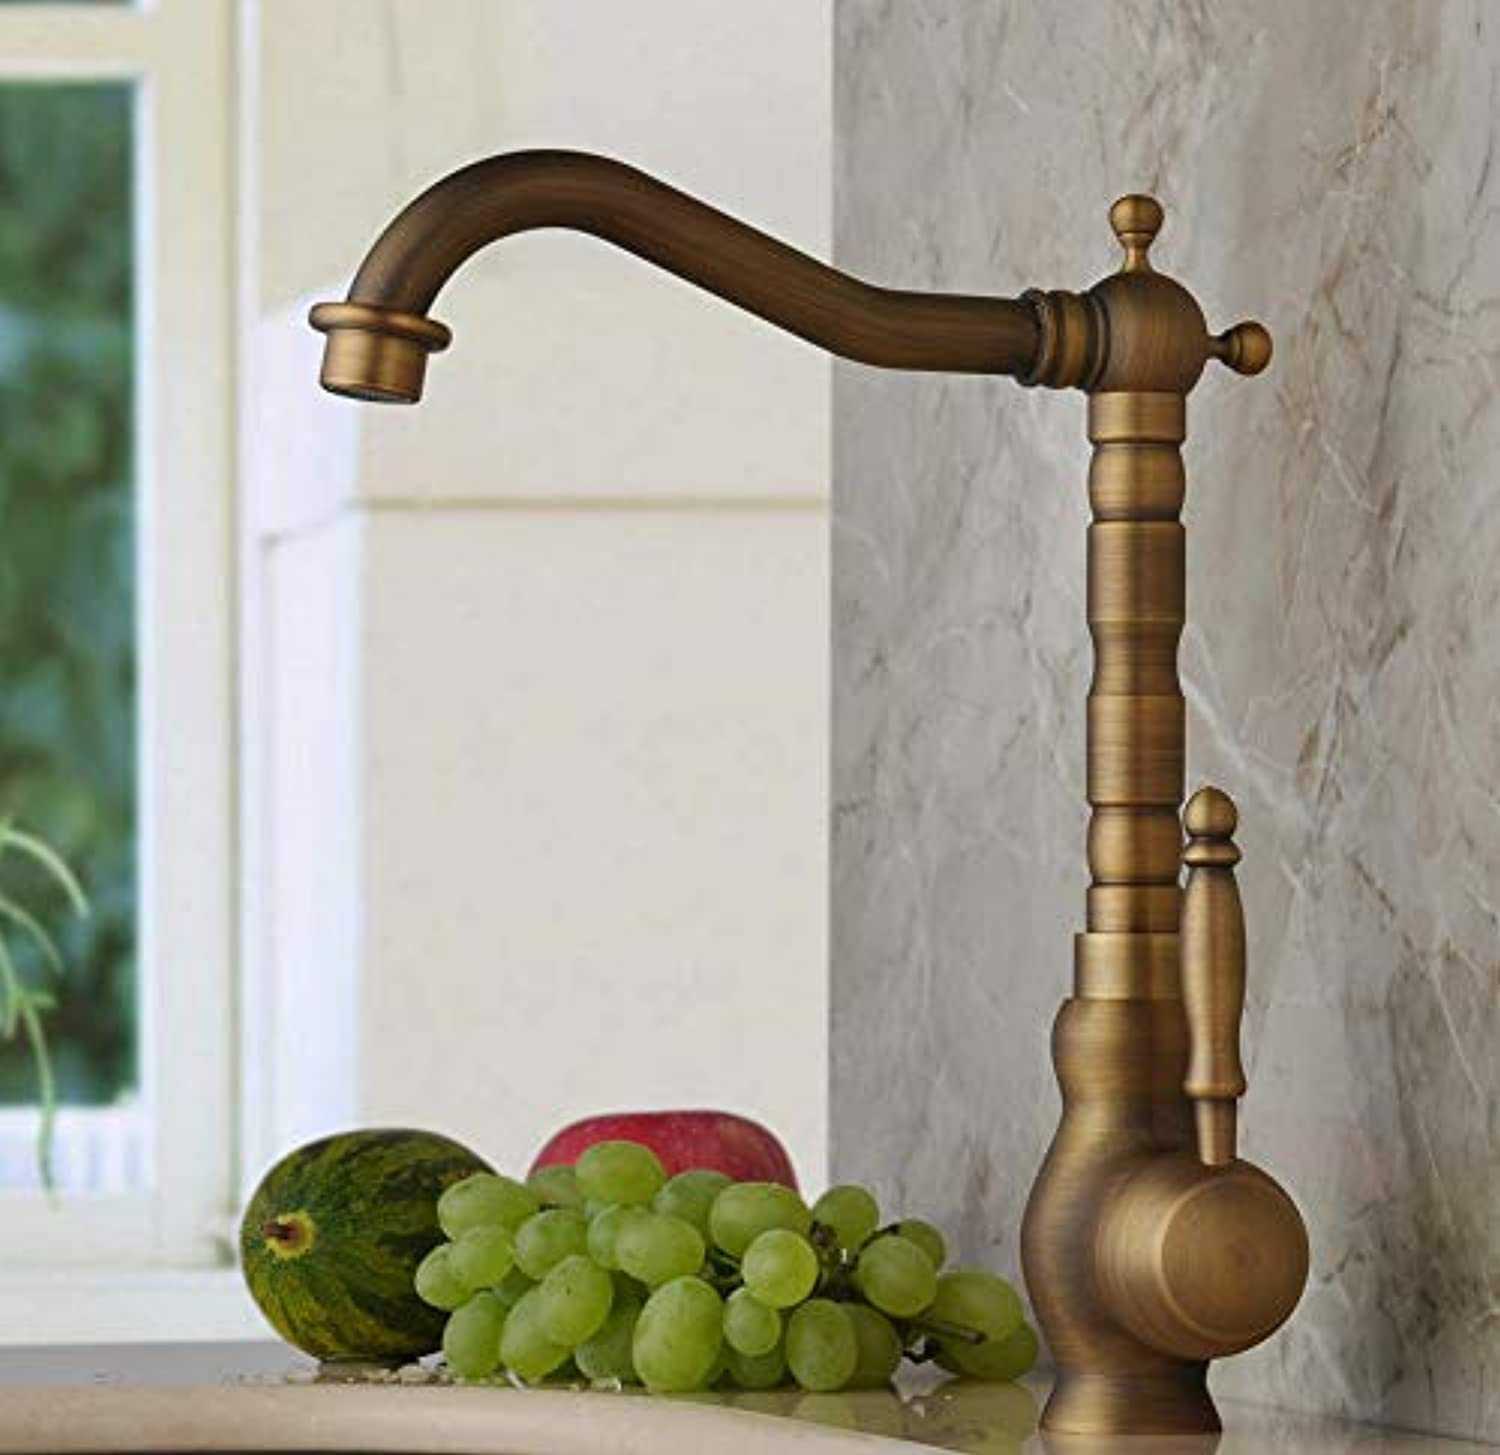 ROKTONG Kitchen Mixer Taps Antique Brass Lever Sink Taps Giraffe Basin Faucet with Swivel spout